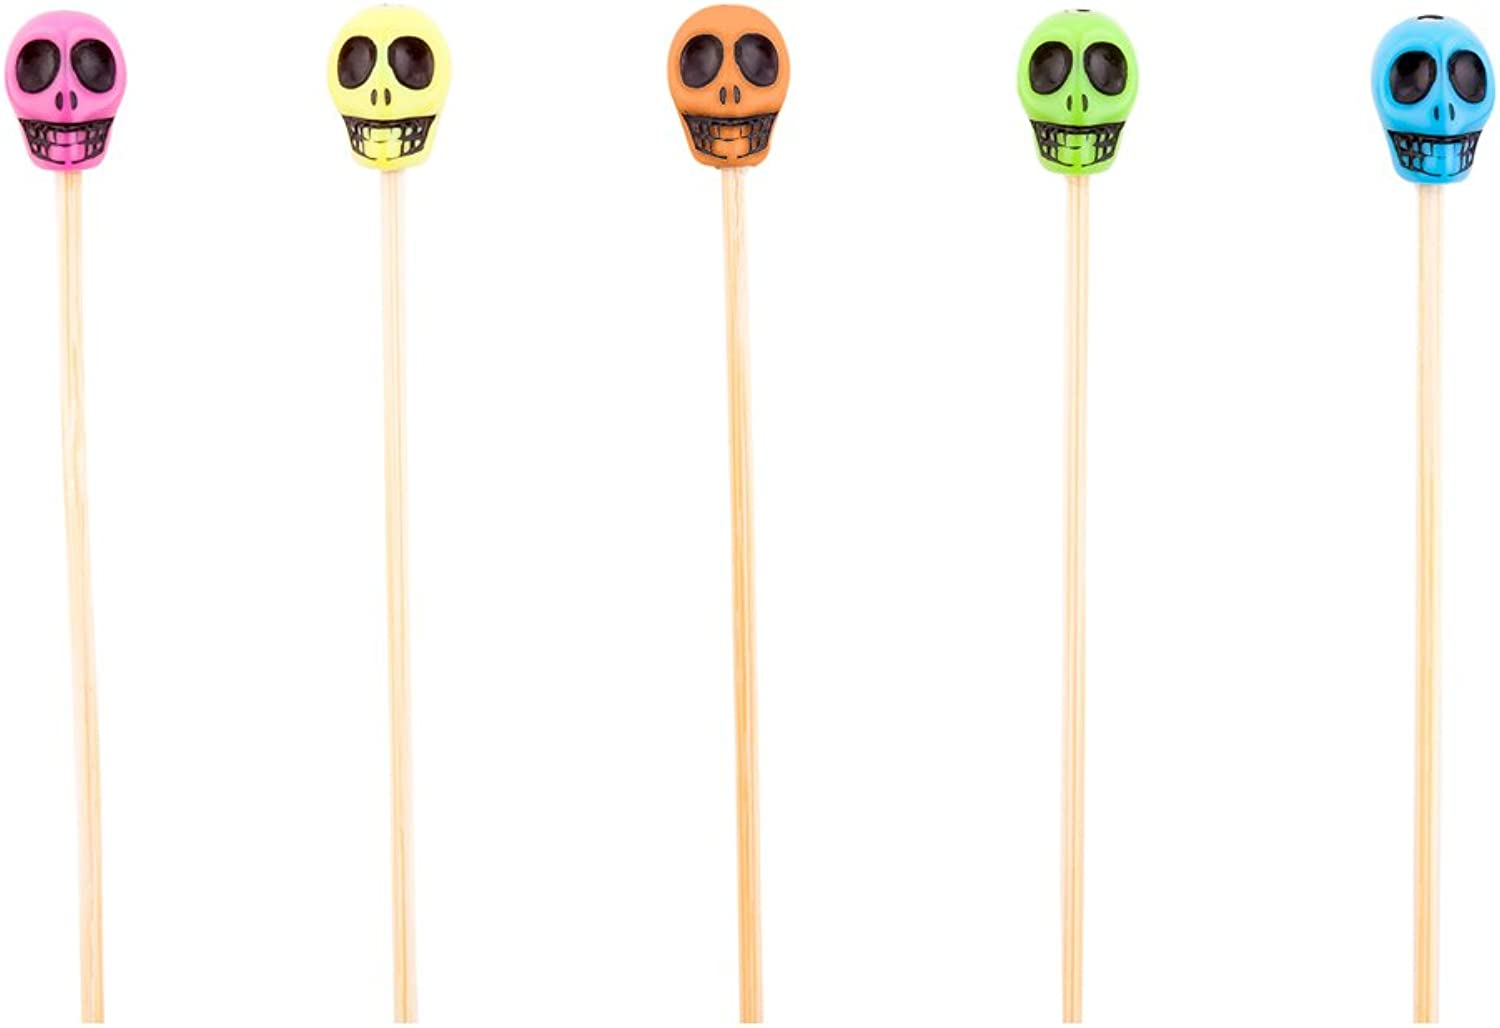 Skull Bamboo Skewer - 4-inch Natural Bamboo color Skewers  Perfect for Serving Appetizers and Cocktail Garnishes - Wood and Acrylic Skull - 1000-CT - Biodegradable and Eco-Friendly - Restaurantware